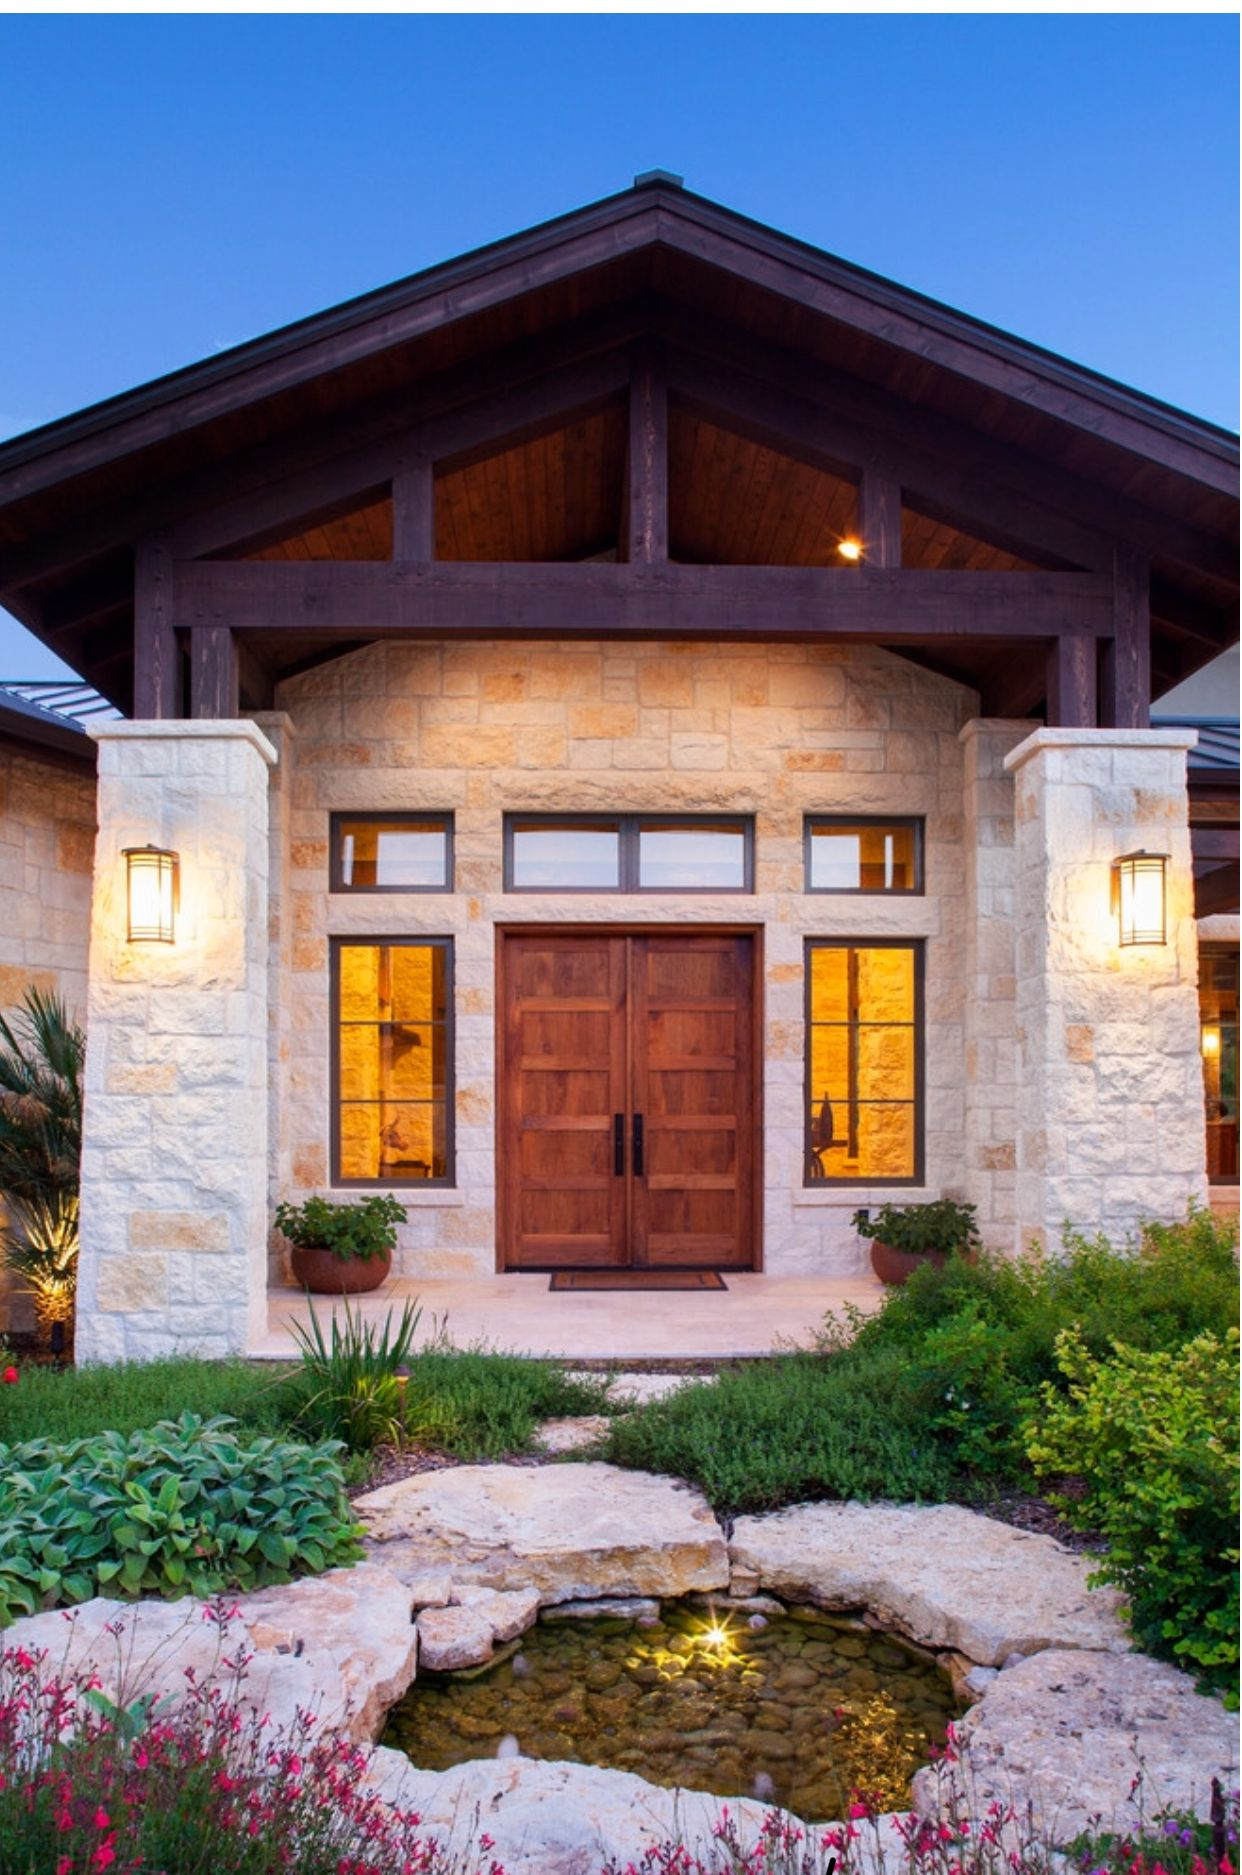 Pin by Sarah Weber on New house exterior | Pinterest | House Transitional House Design Texas Hill Country on sunset house designs, modern country kitchen designs, traditional house designs, texas home designs, victorian house designs, south texas house designs, wildlife house designs, texas lake house designs, texas craftsman house designs, usa house designs, louisiana house designs, napa valley house designs, texas country house plans, austin house designs, san francisco house designs, florida house designs, ranch house designs, san diego house designs, one story house designs, texas country kitchens,